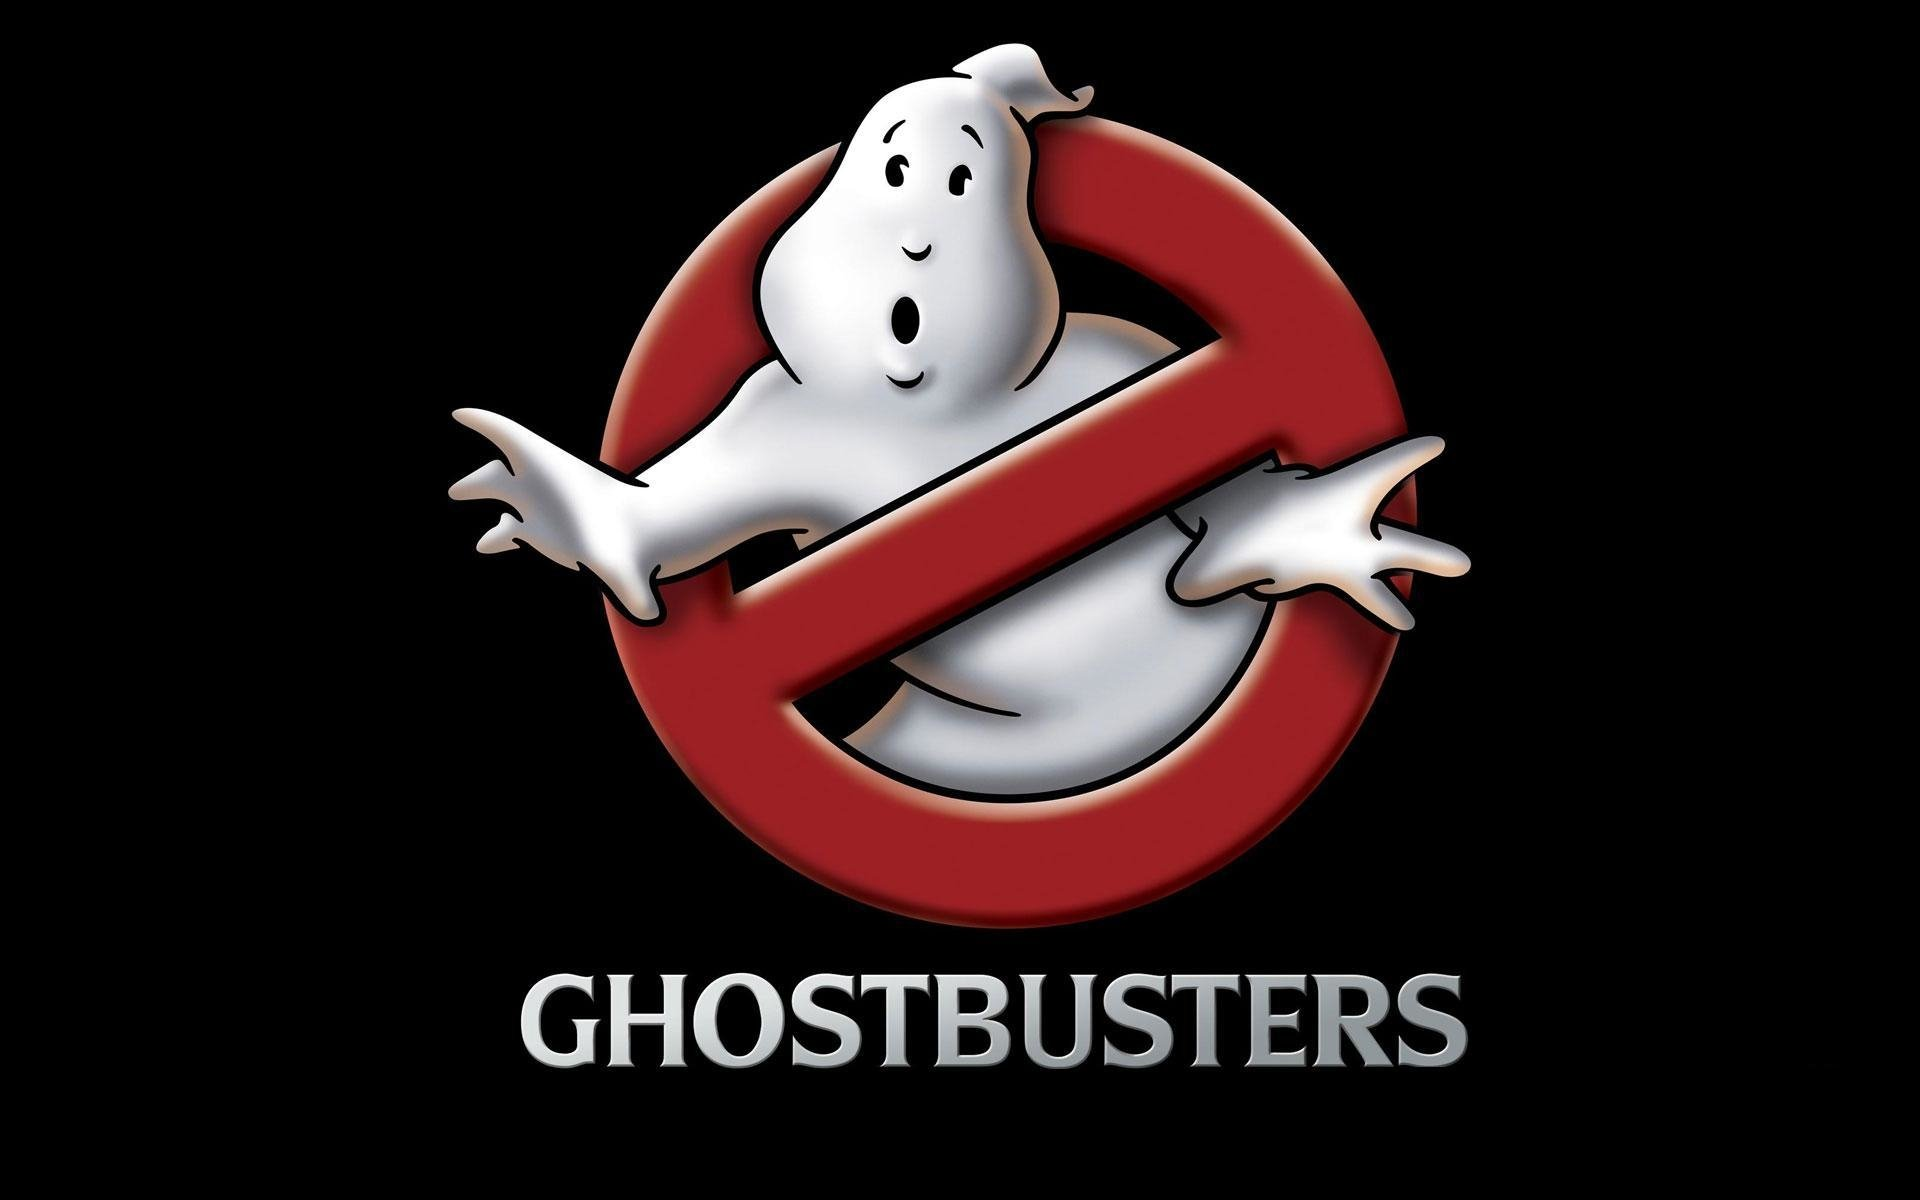 Ghostbusters Wallpaper – Create The Perfect Background For Your Computer